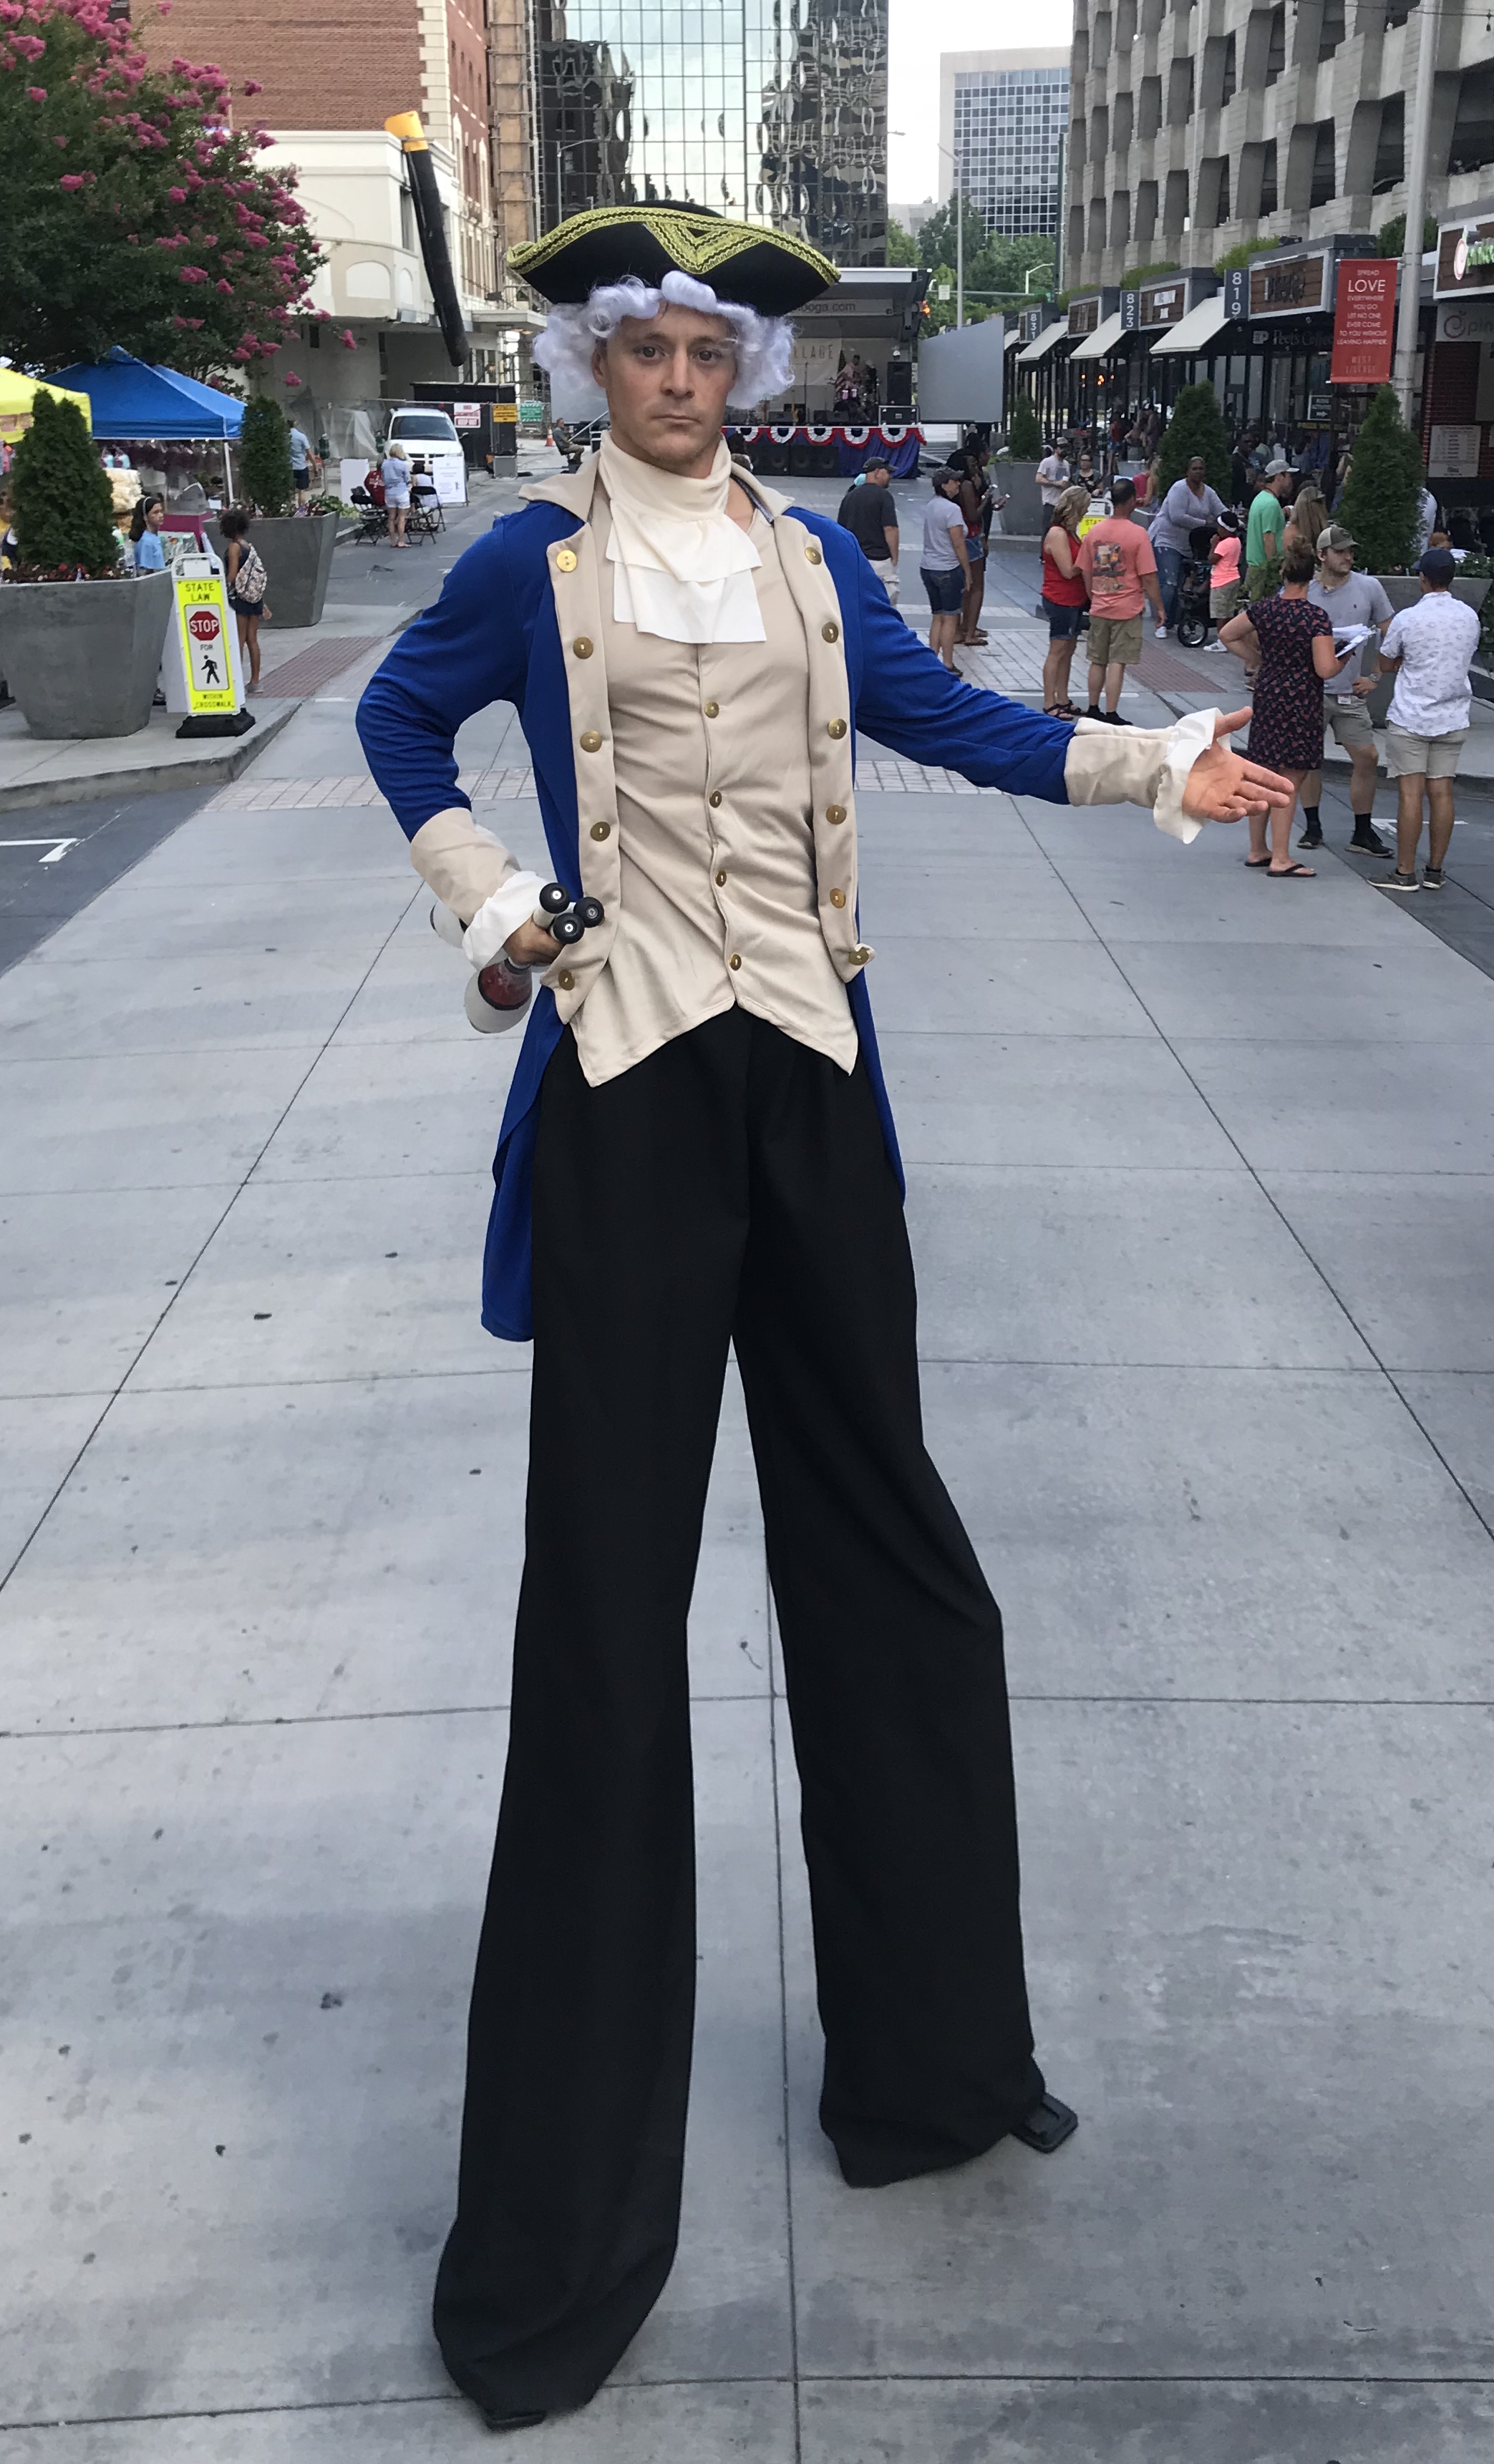 George Washington Stilt Walker